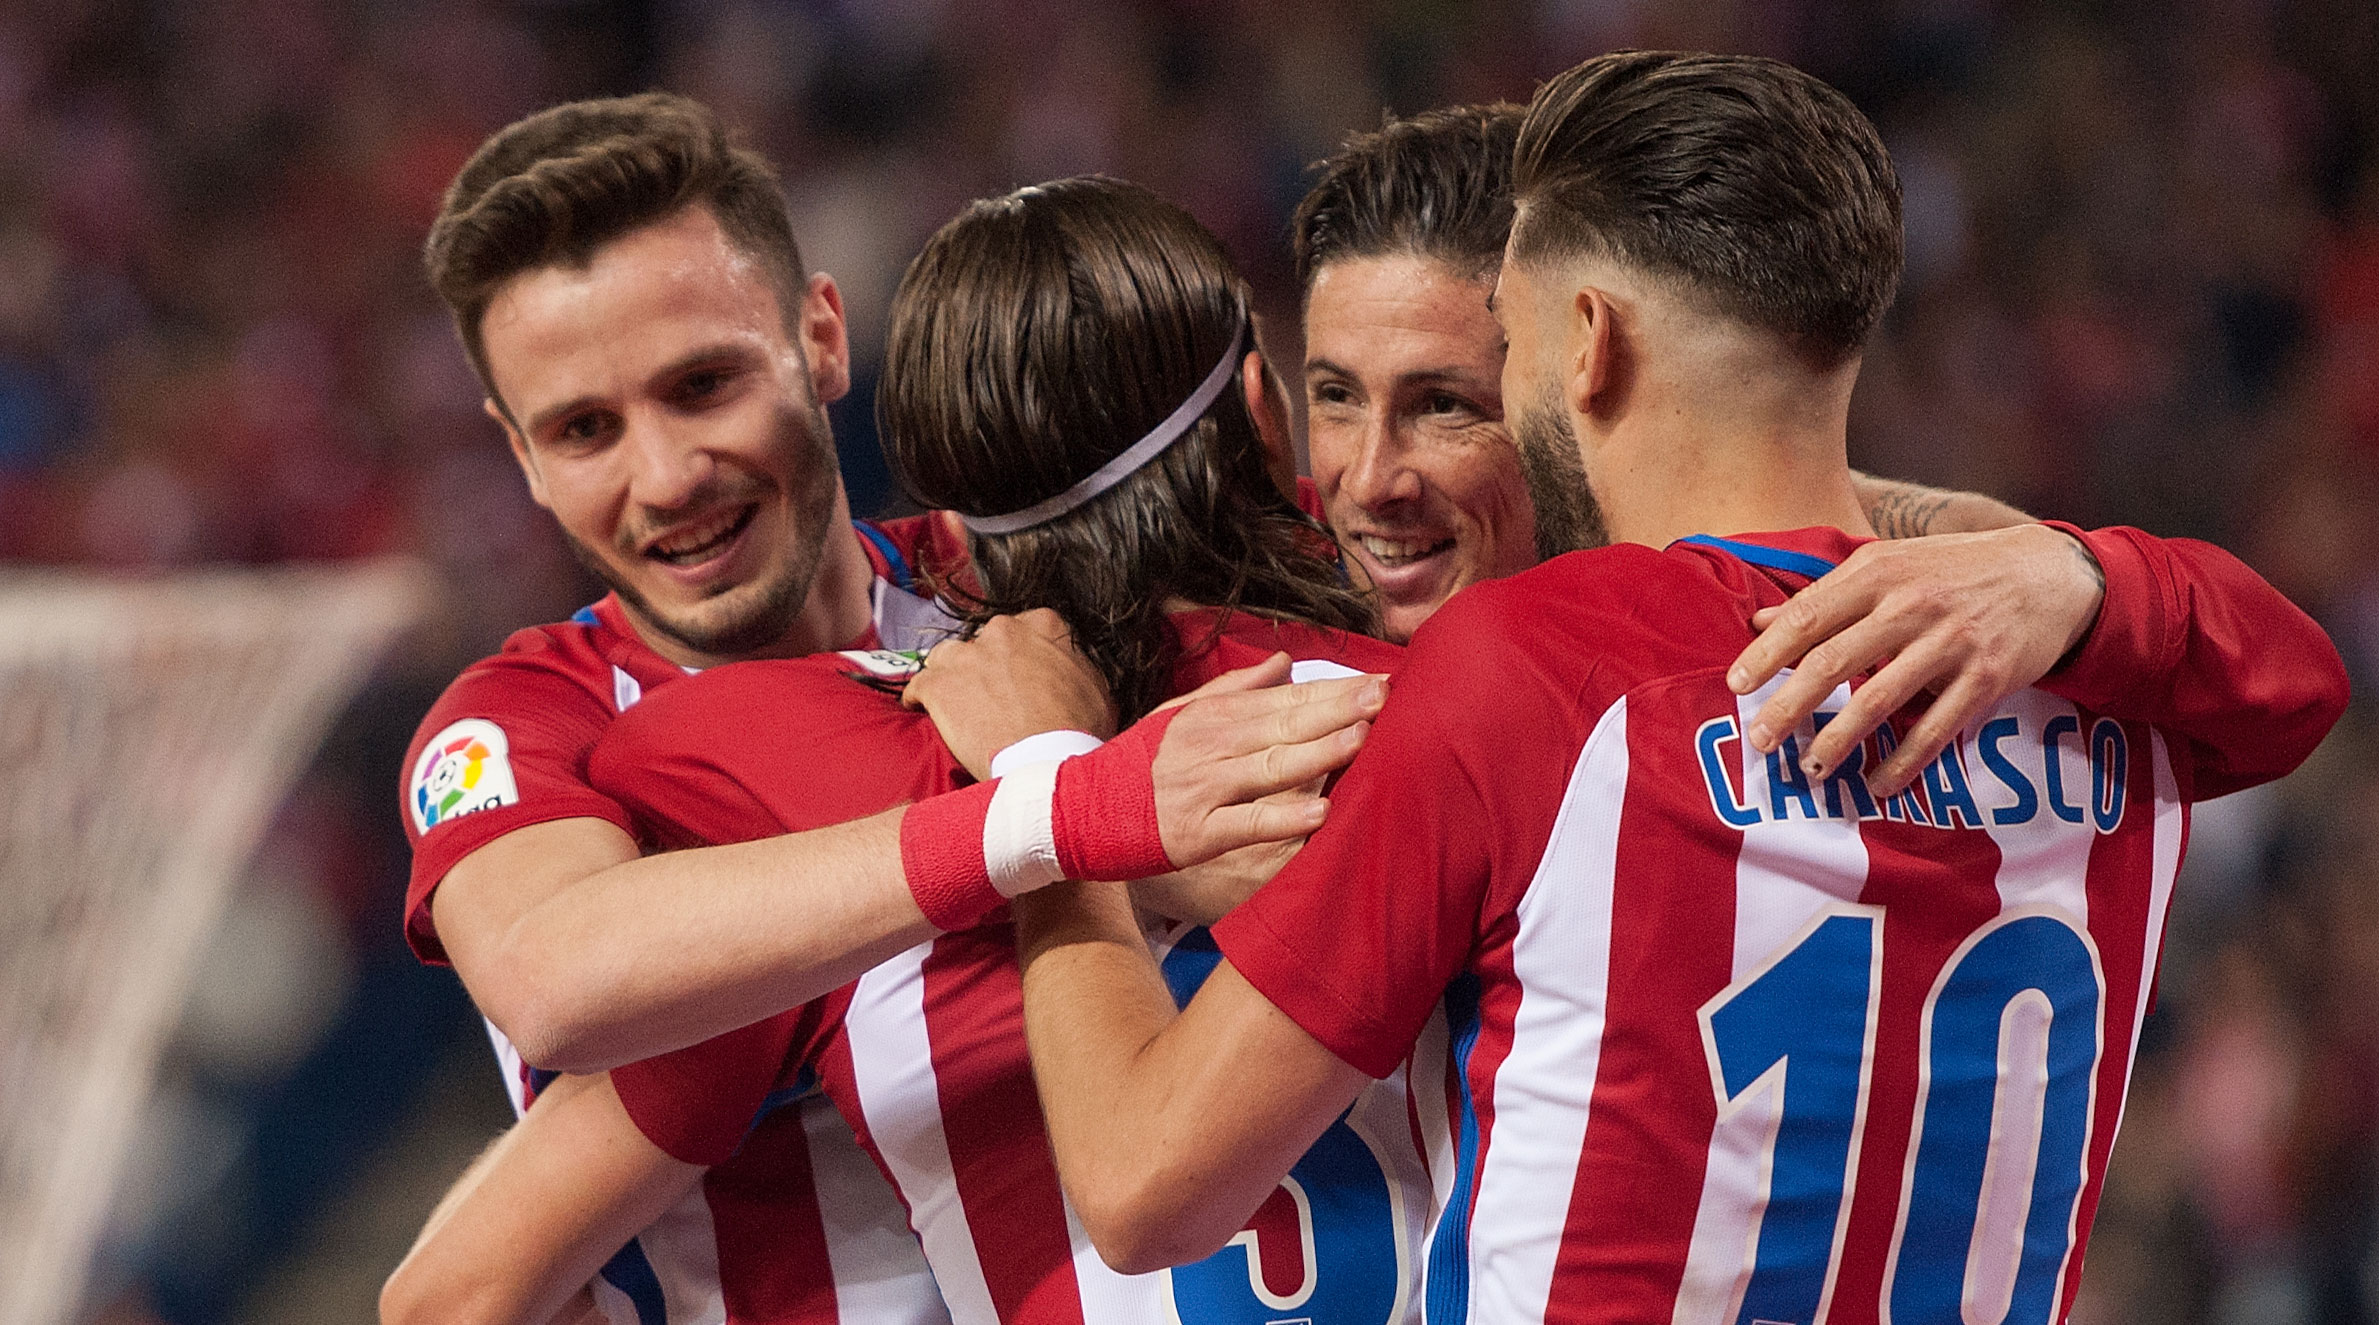 atletico real livestream